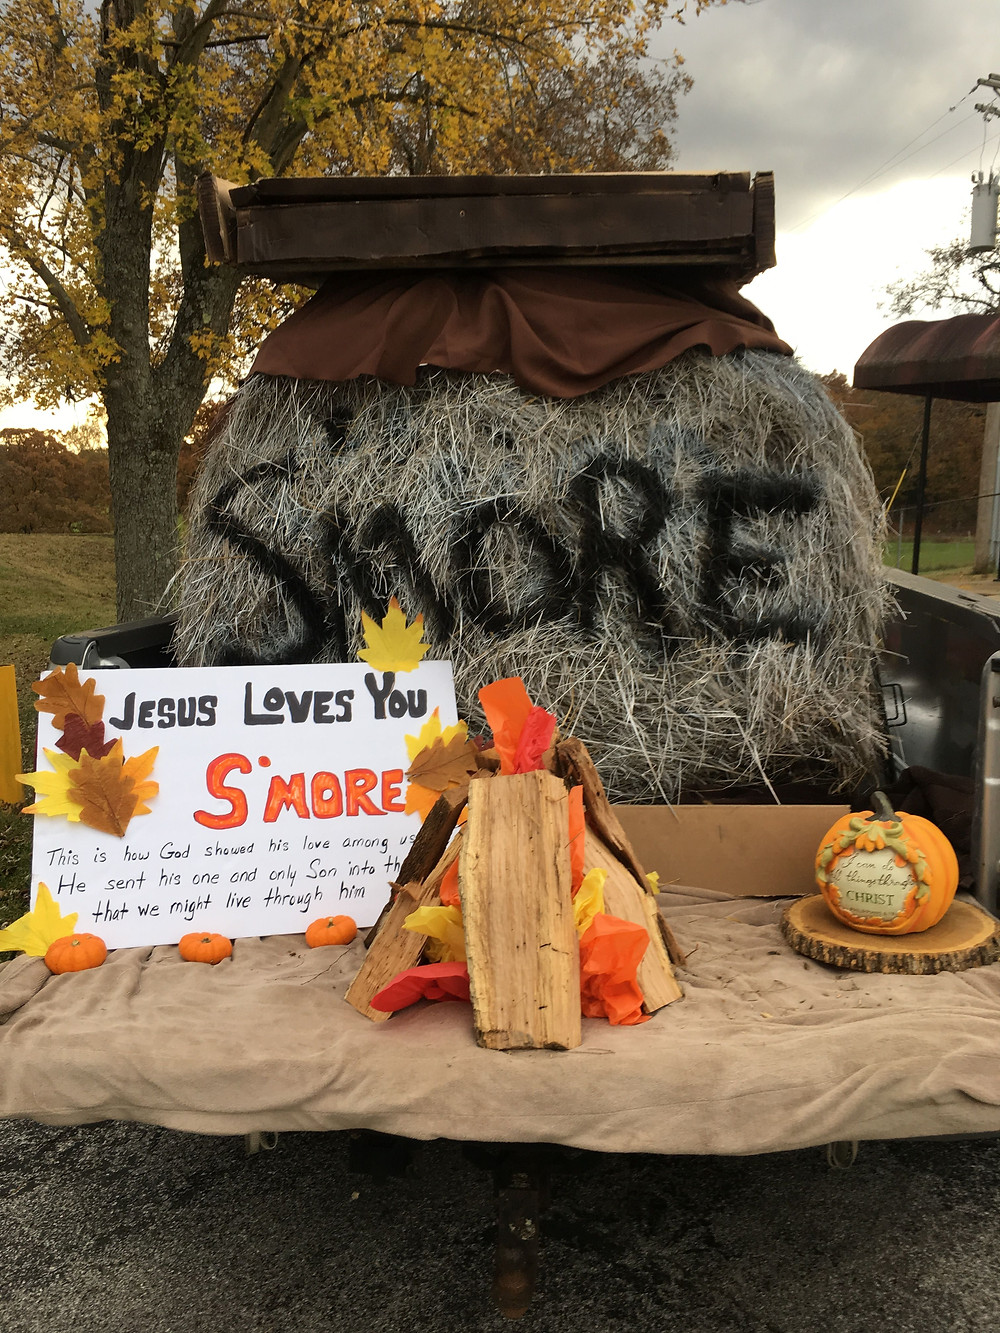 Christian ideas for church trunk or treat, S'more Jesus